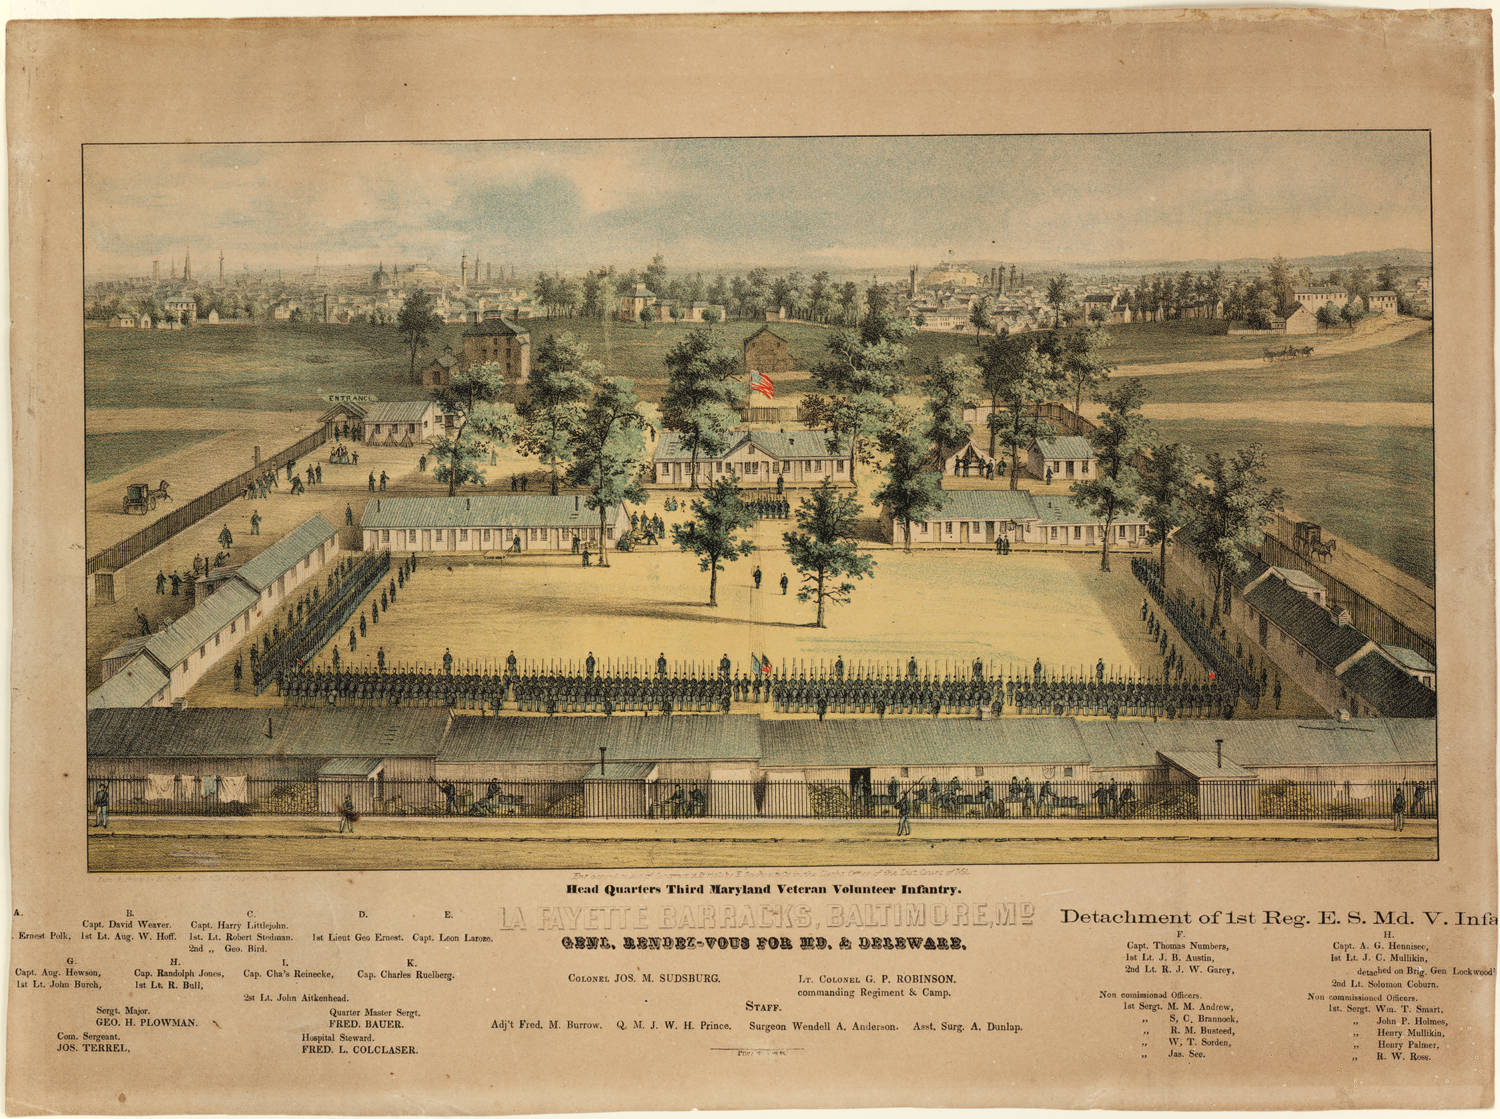 Lafayette Barracks, c. 1862. Courtesy Enoch Pratt Free Library. mdcp122.